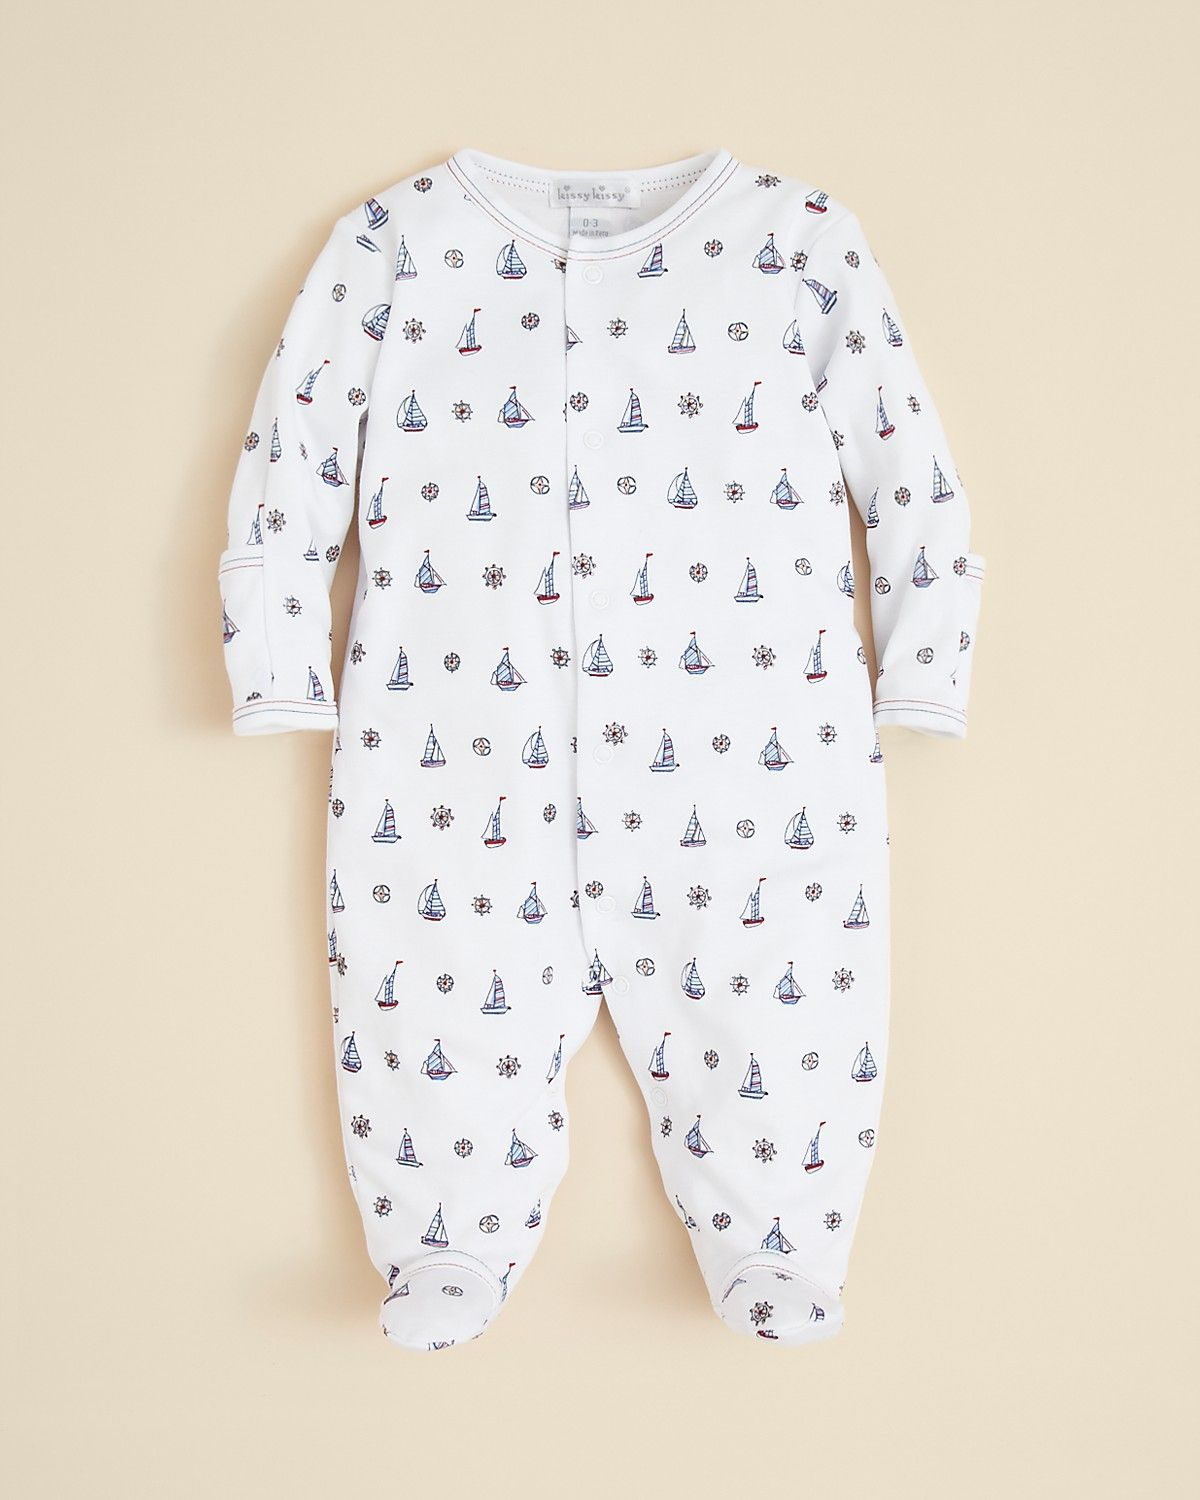 Kissy Kissy Infant Boys Sailboat Print Footie Sizes 0 9 Months Kids Baby Baby Boy 0 24 Months Bloomingdale S Baby Outfits Newborn Baby Boy Baby Boy Clothes Newborn